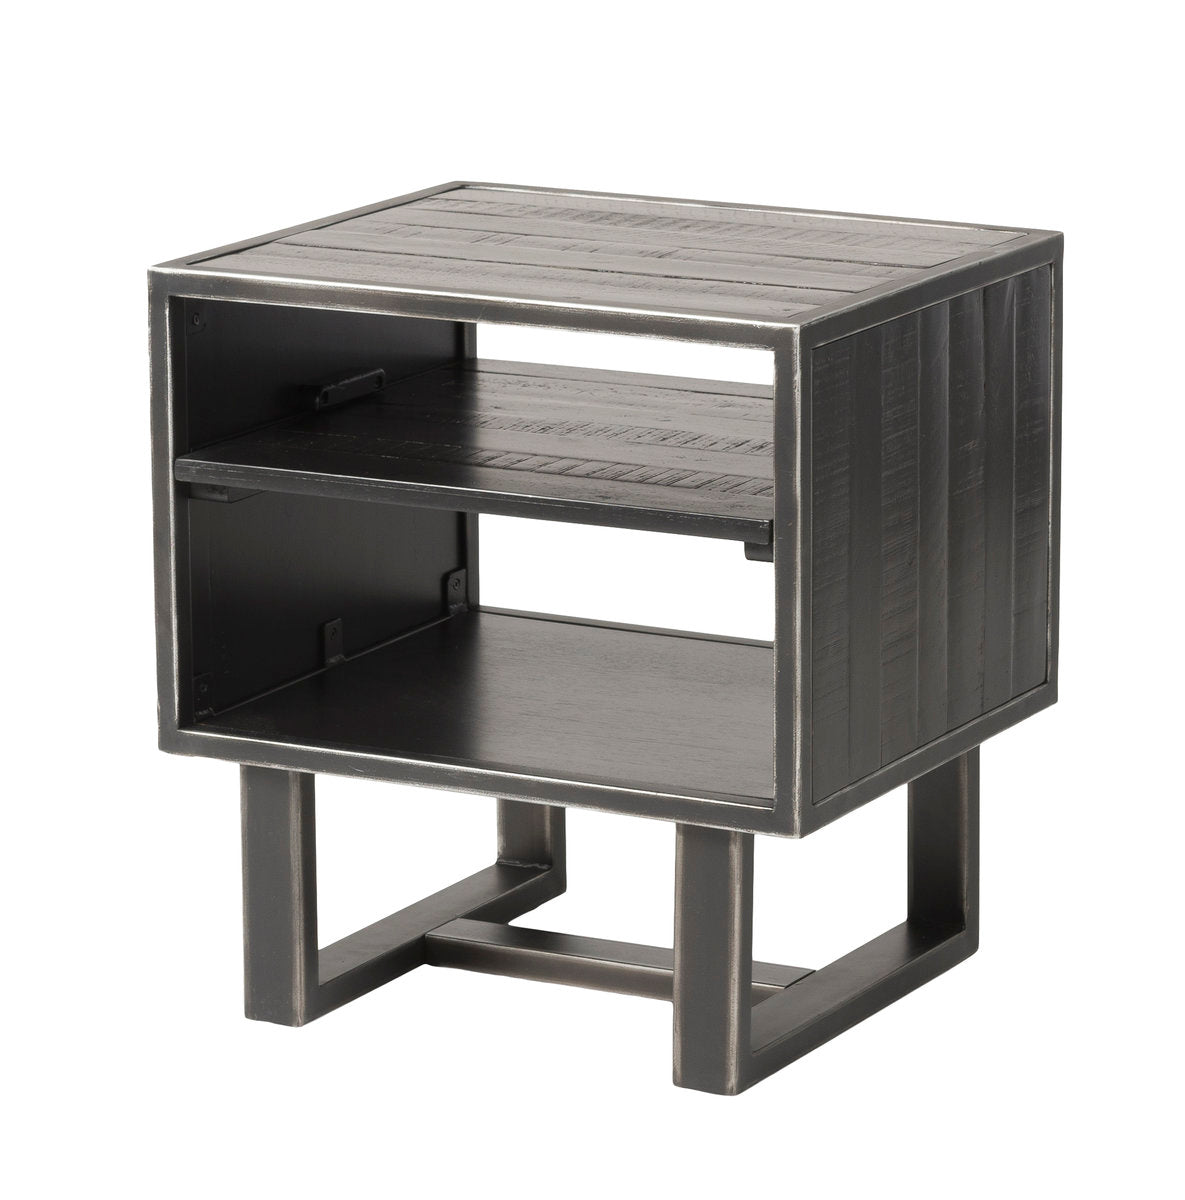 THEROS SIDE TABLE W / SHELF